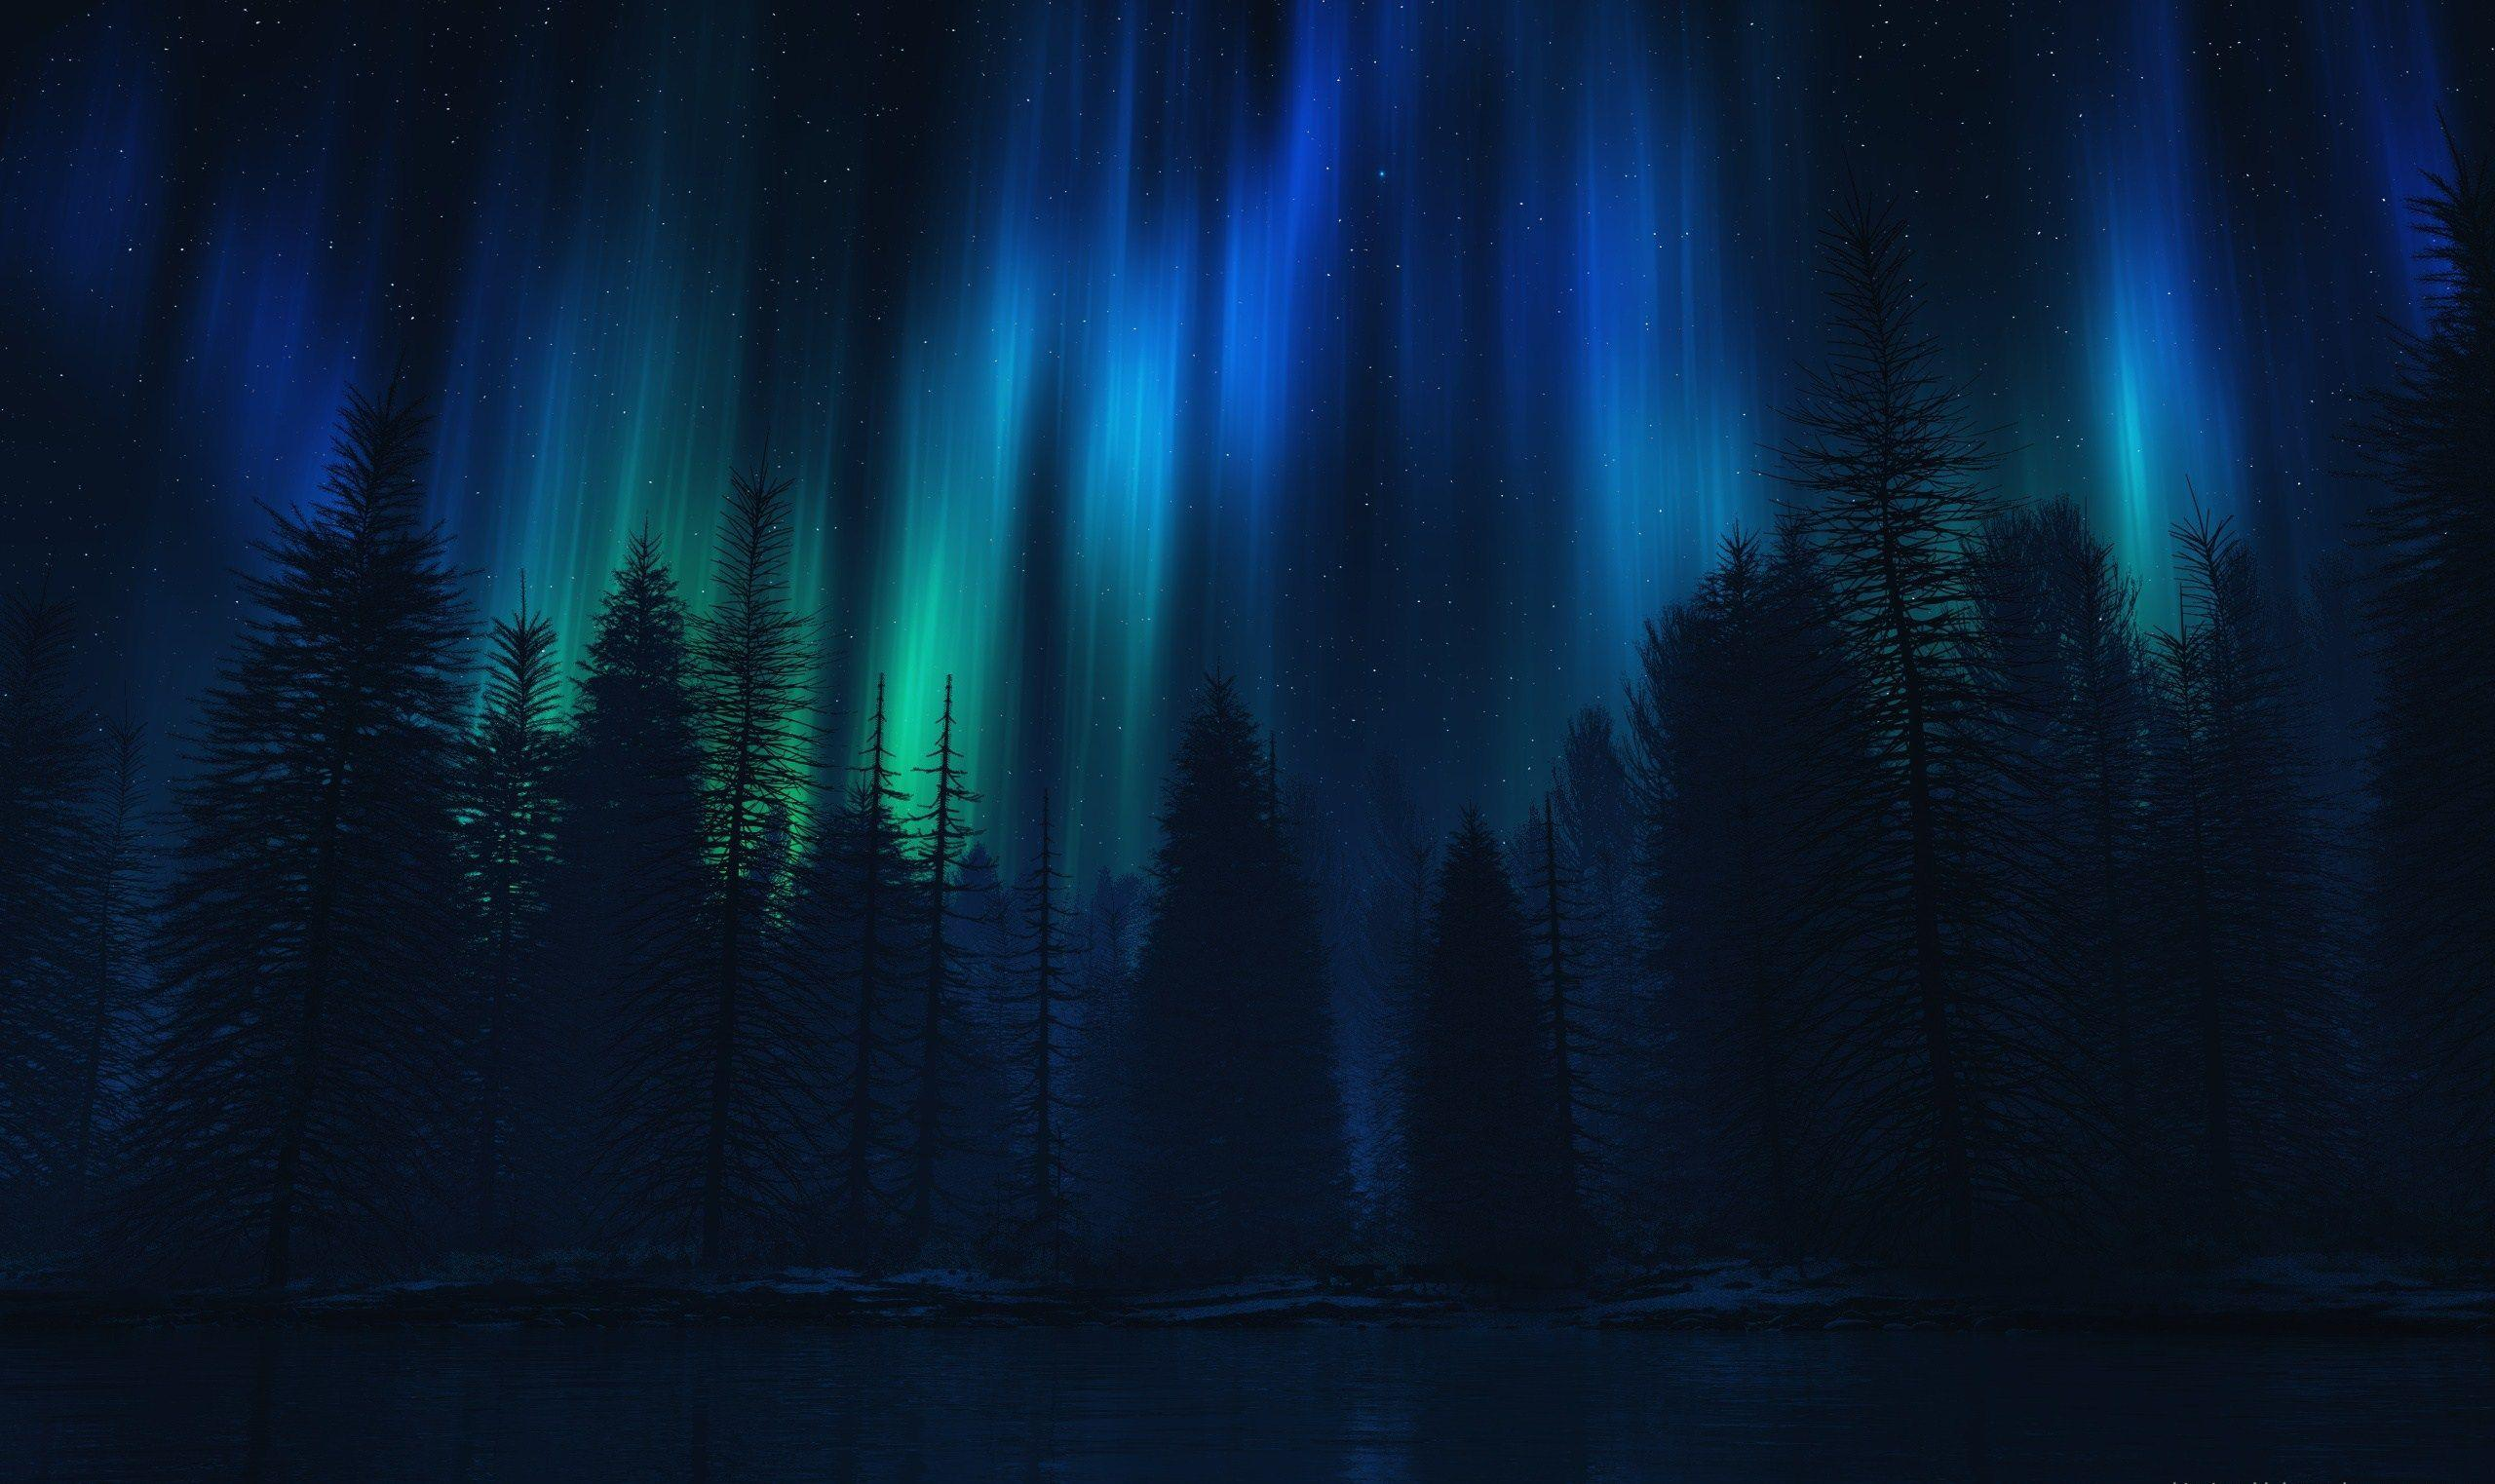 HD Northern Lights Wallpapers